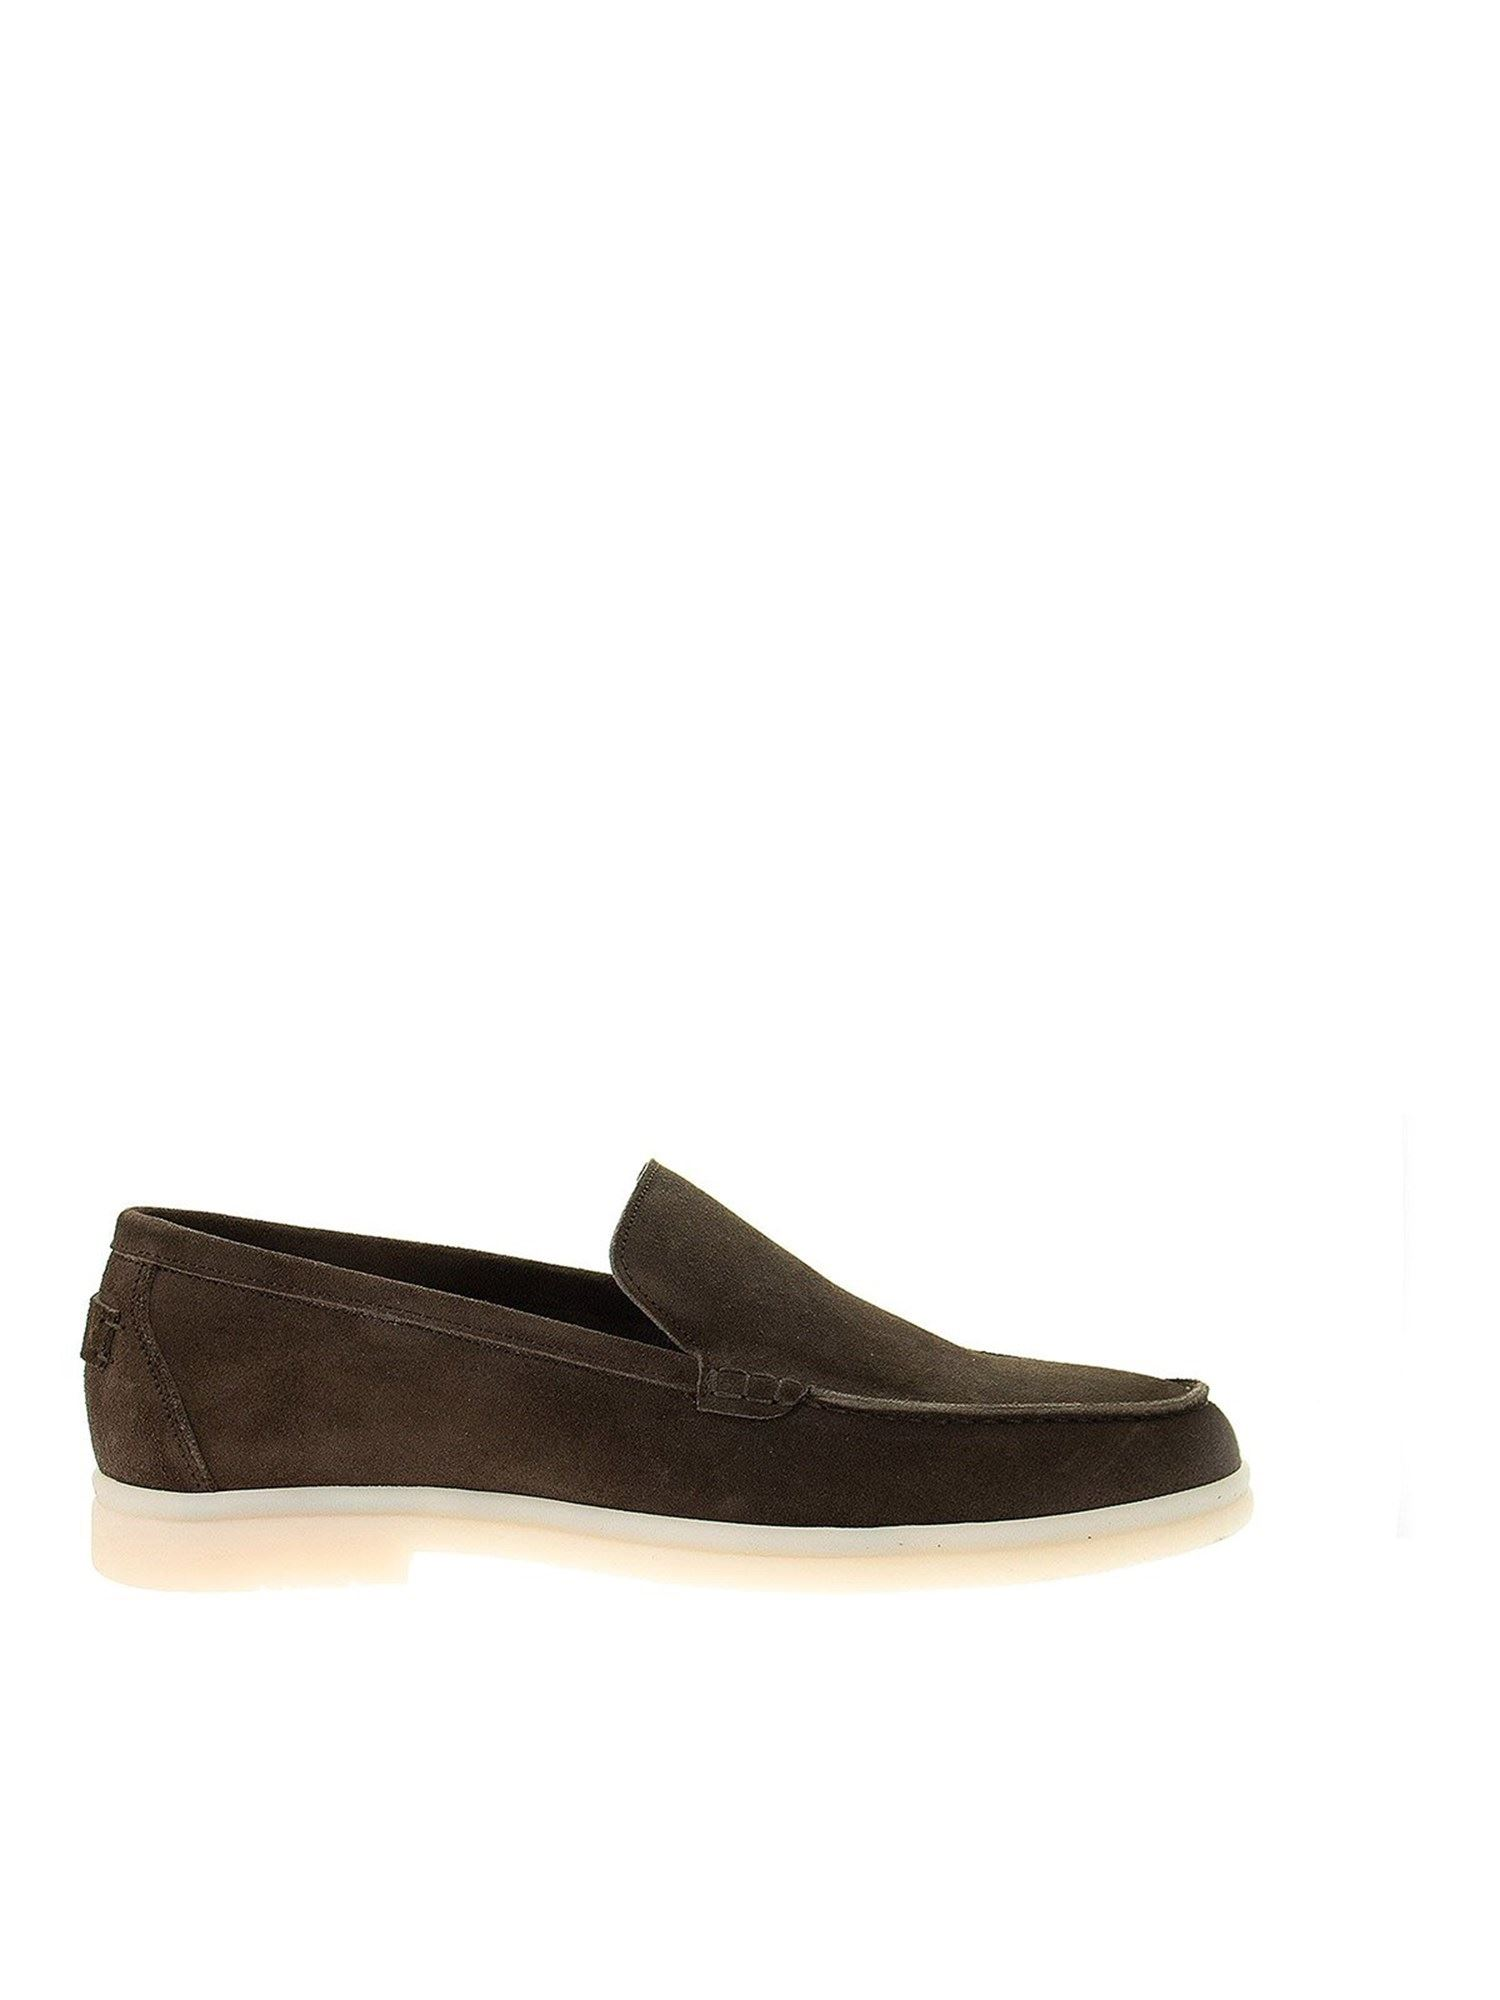 Berwick 1707 SUEDE LOAFERS WITH REAR LOGO PATCH